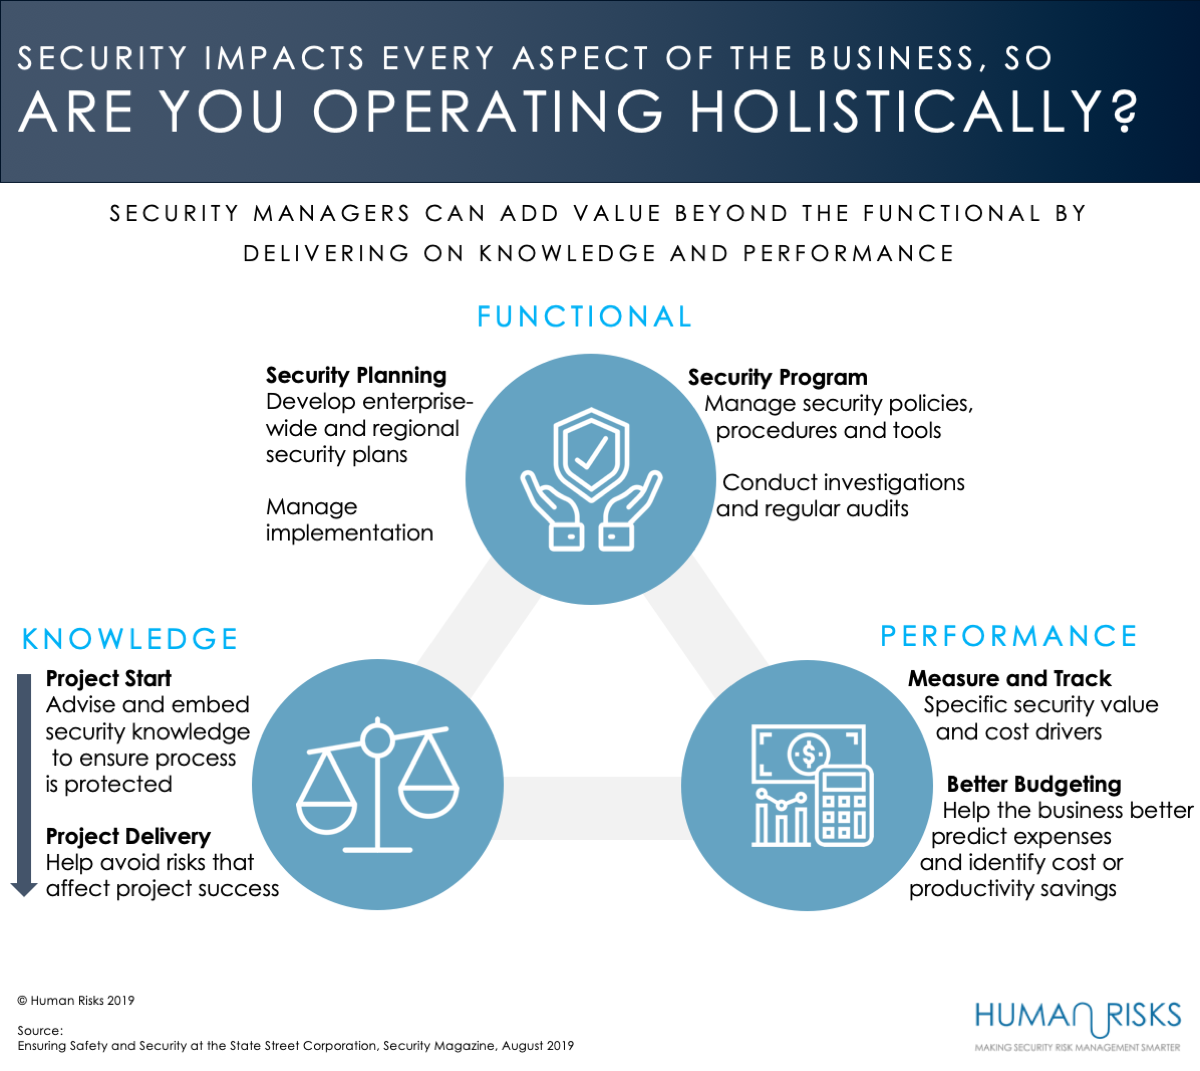 Holistic security risk management